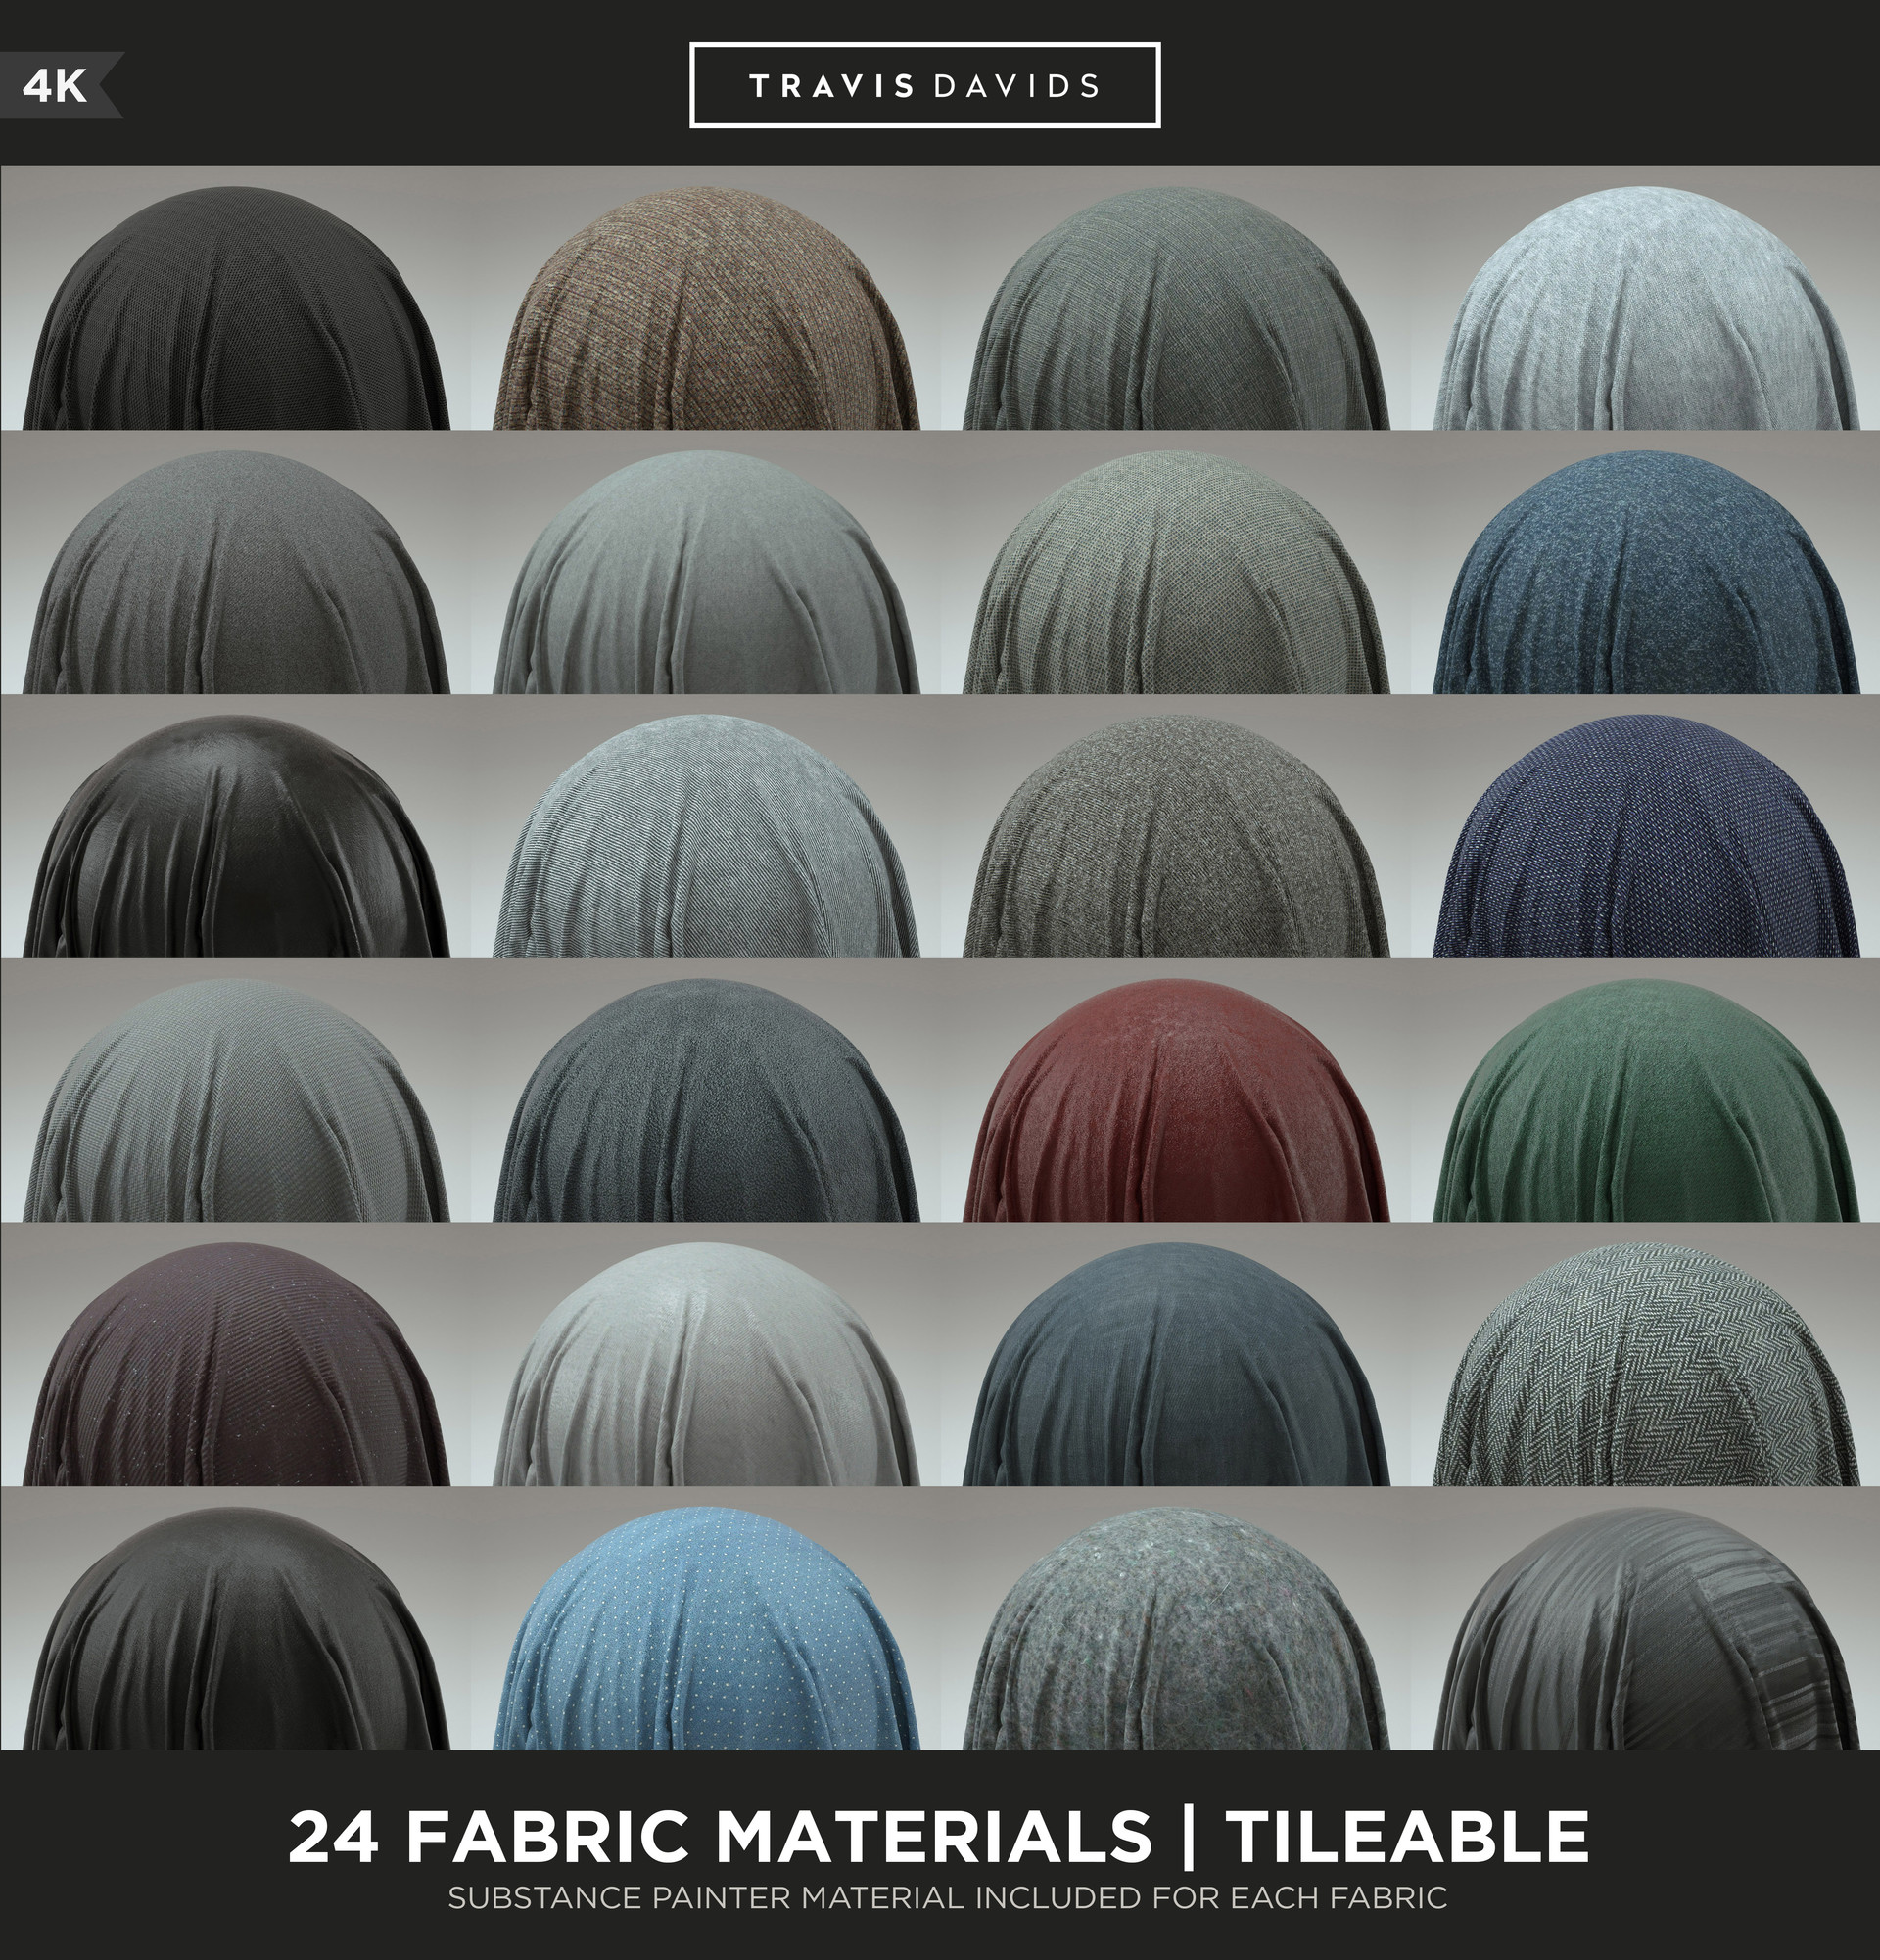 ArtStation - 24 FABRIC MATERIALS - 4K - TILEABLE - SUBSTANCE